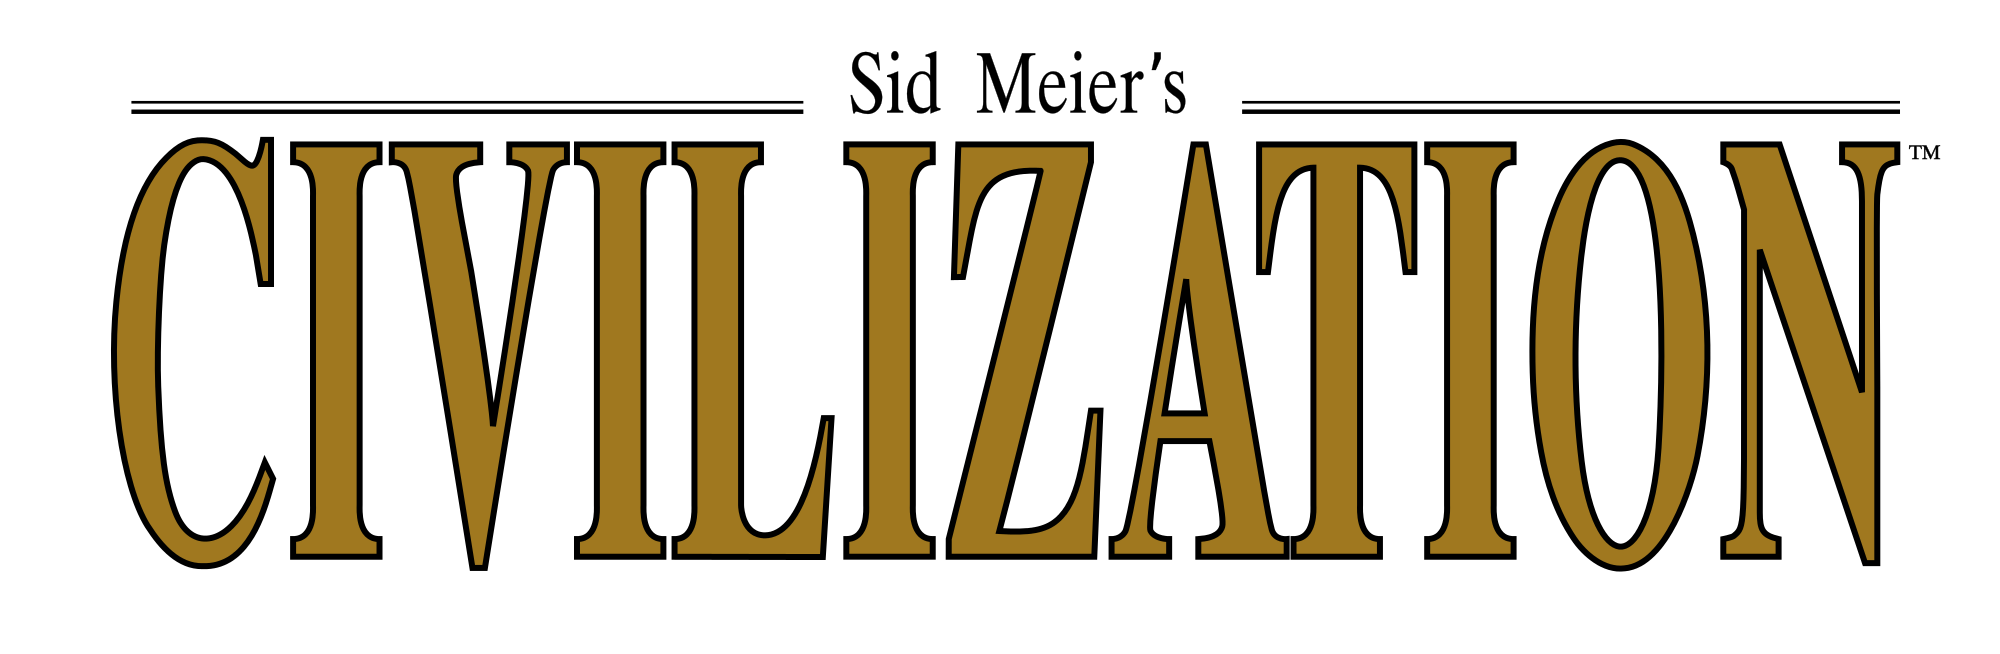 The Civilization PlusPng.com  - Civilization Game PNG